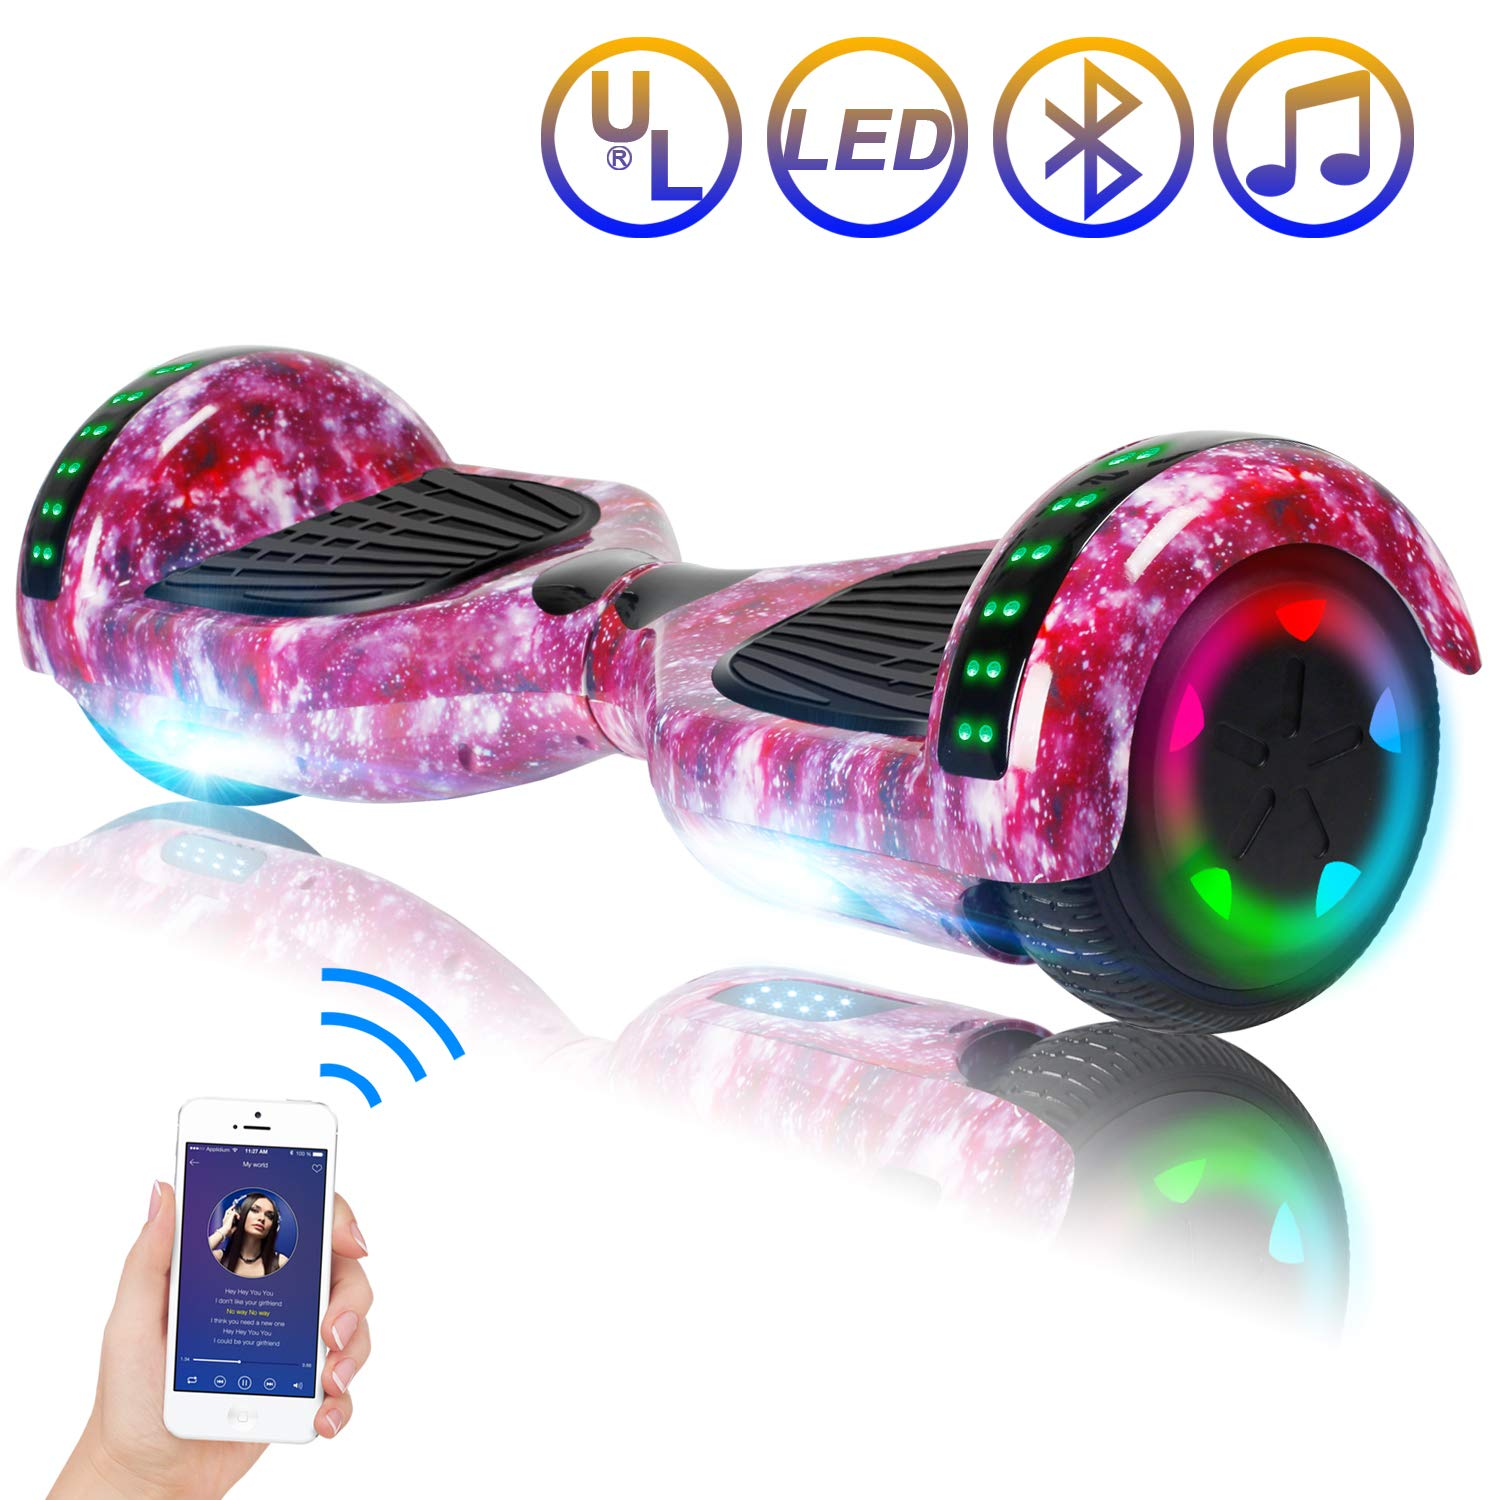 Hoverboard Self Balancing Scooter 6.5'' Two-Wheel Self Balancing Hoverboard with Bluetooth Speaker and LED Lights Electric Scooter for Adult Kids Gift UL 2272 Certified Fun Edition - Purple Galaxy